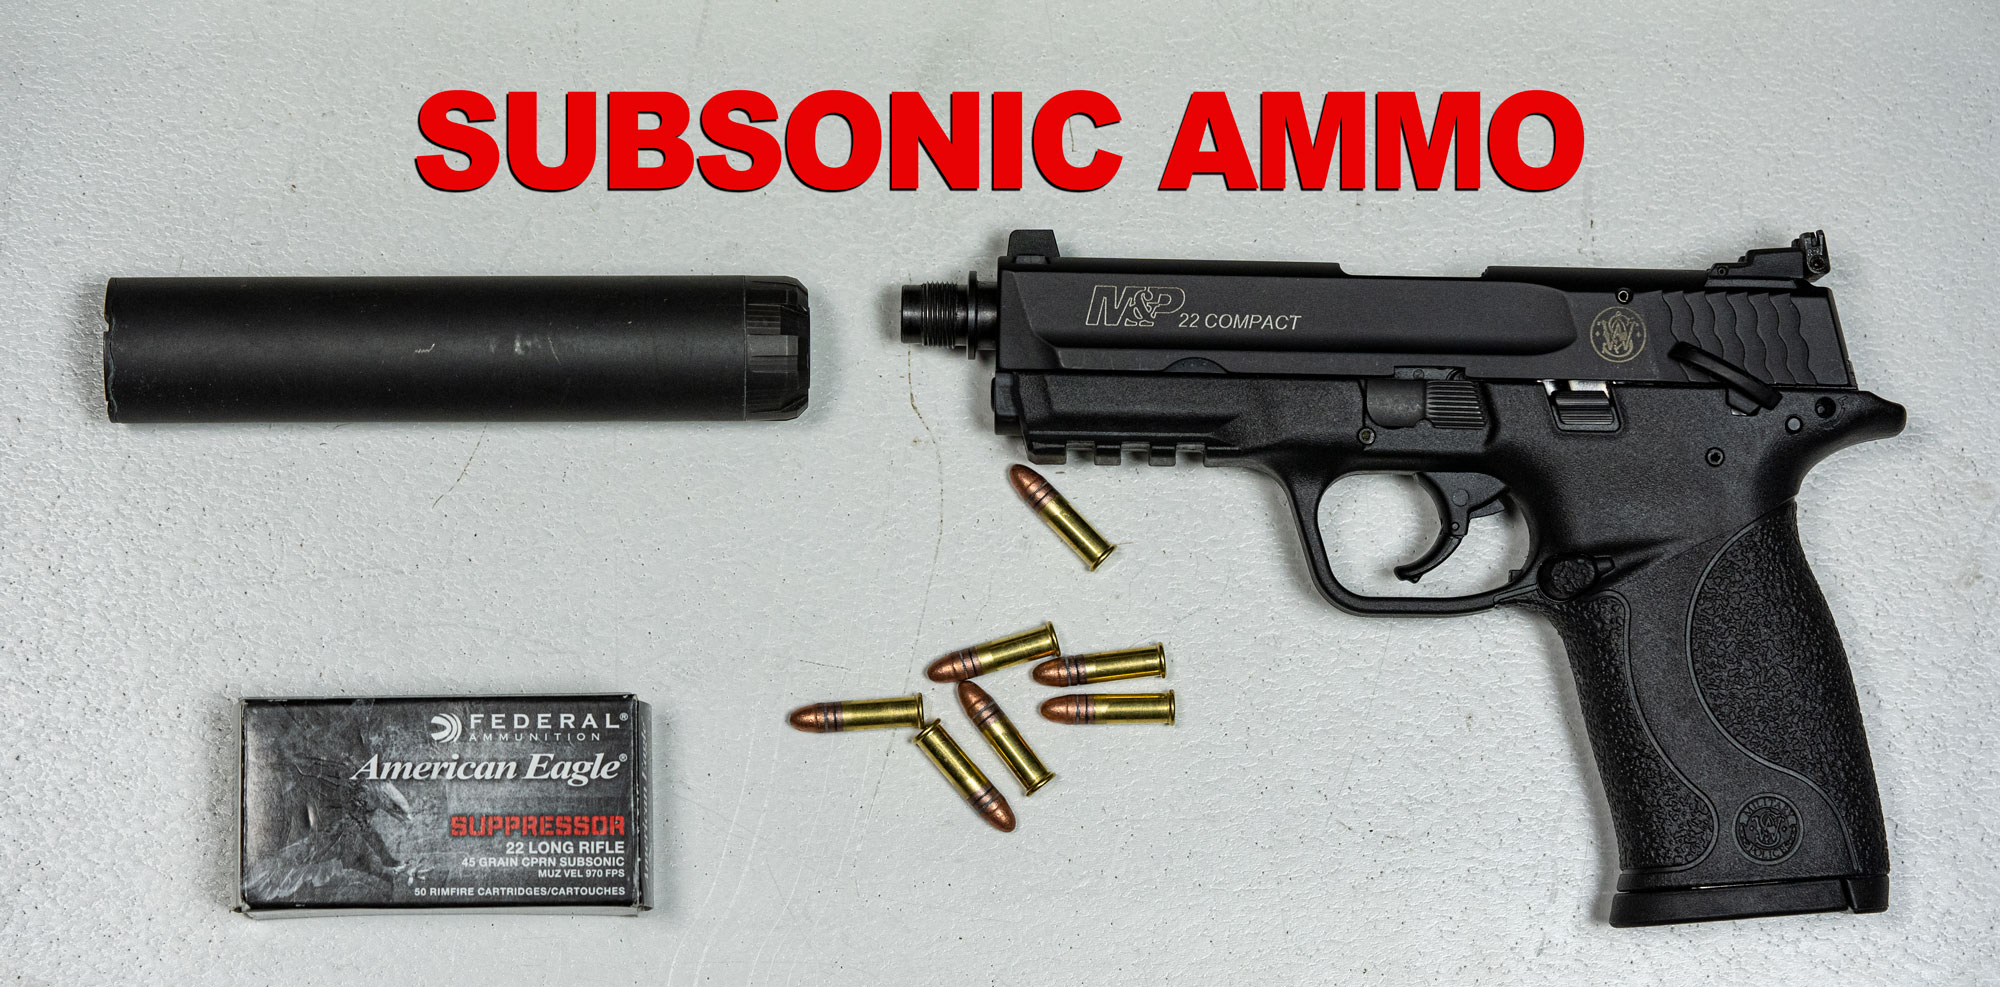 Subsonic ammo with silencer and pistol